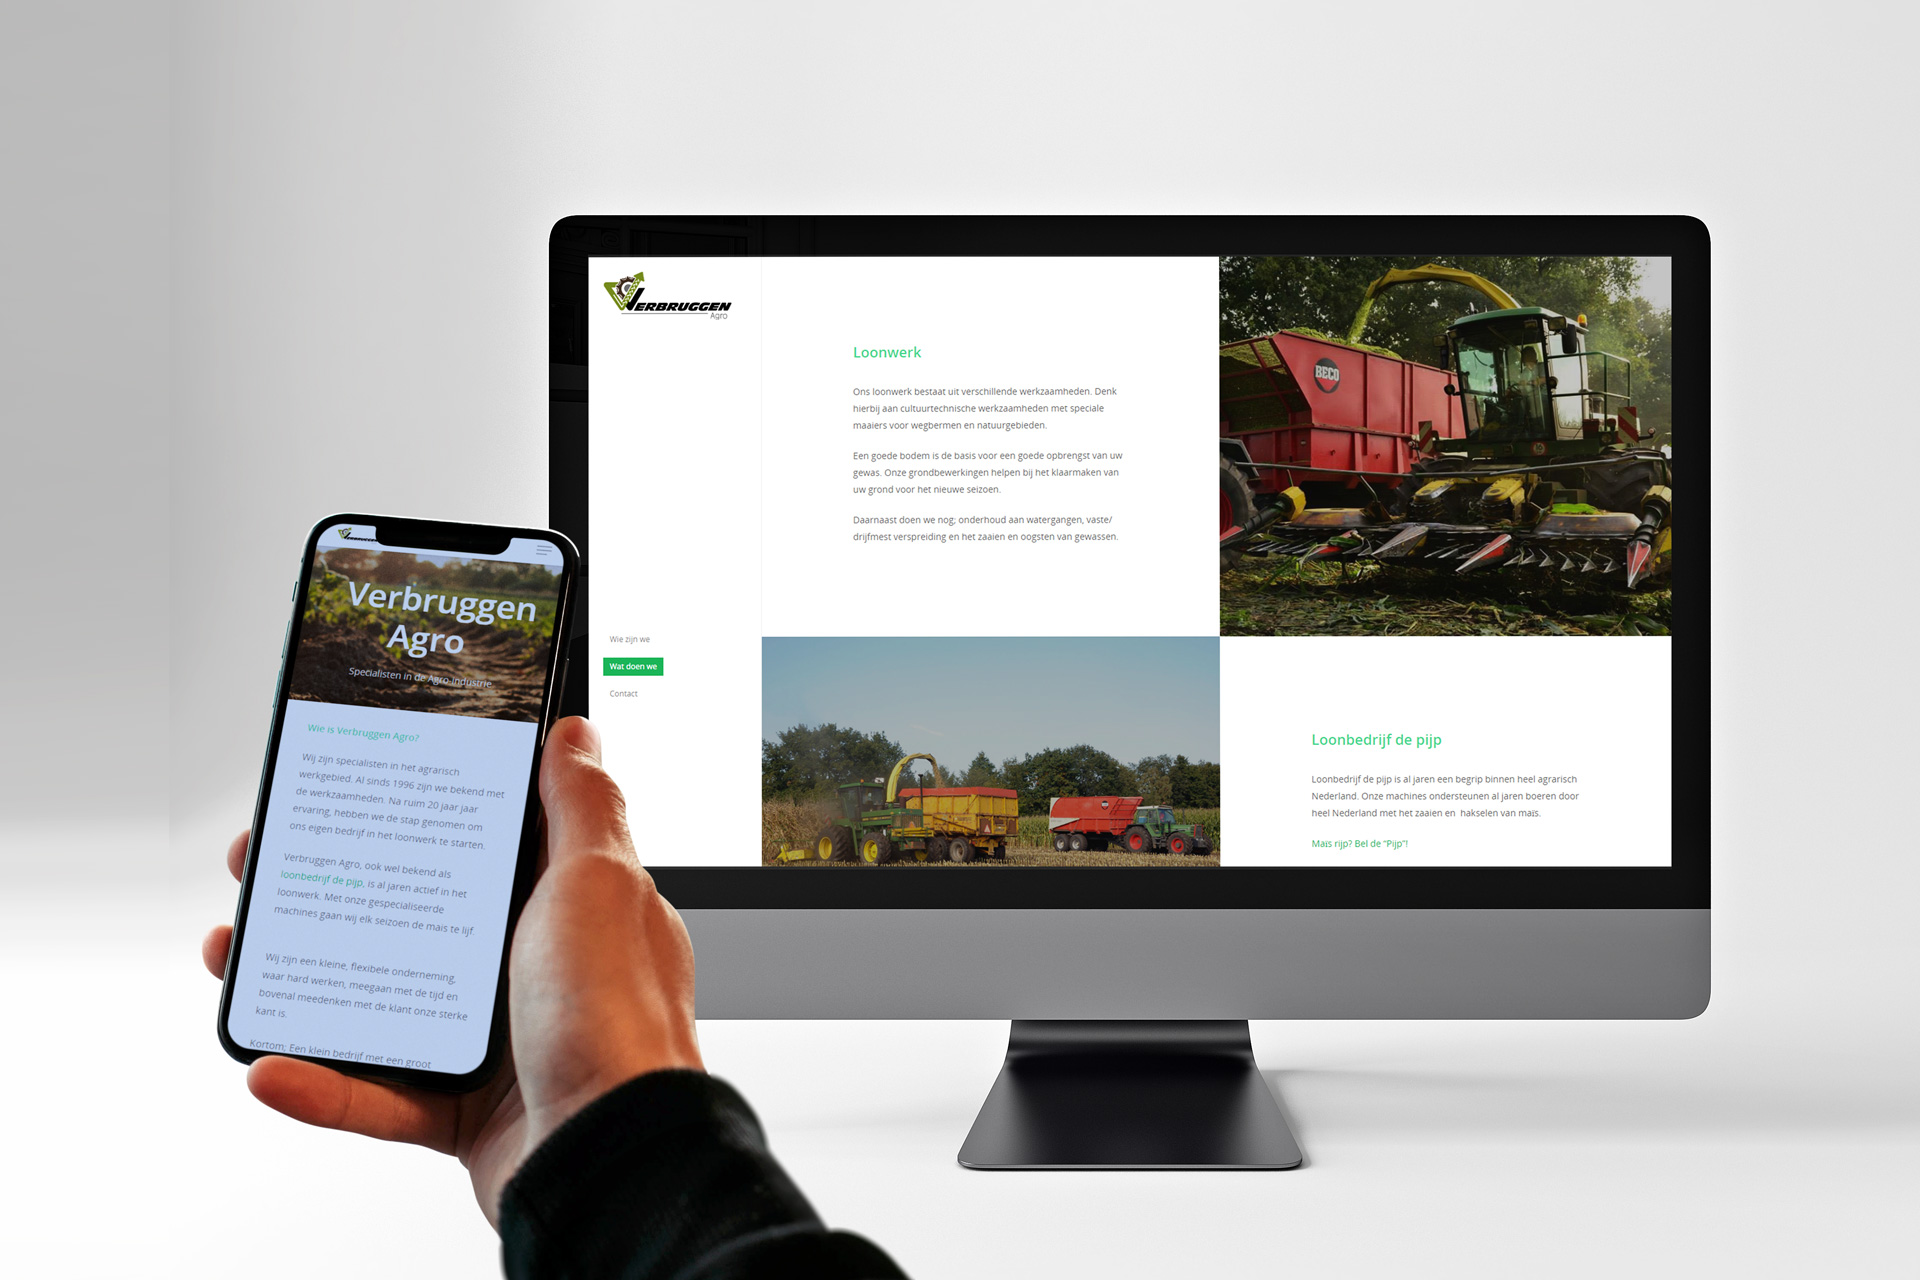 Verbruggen Agro Website